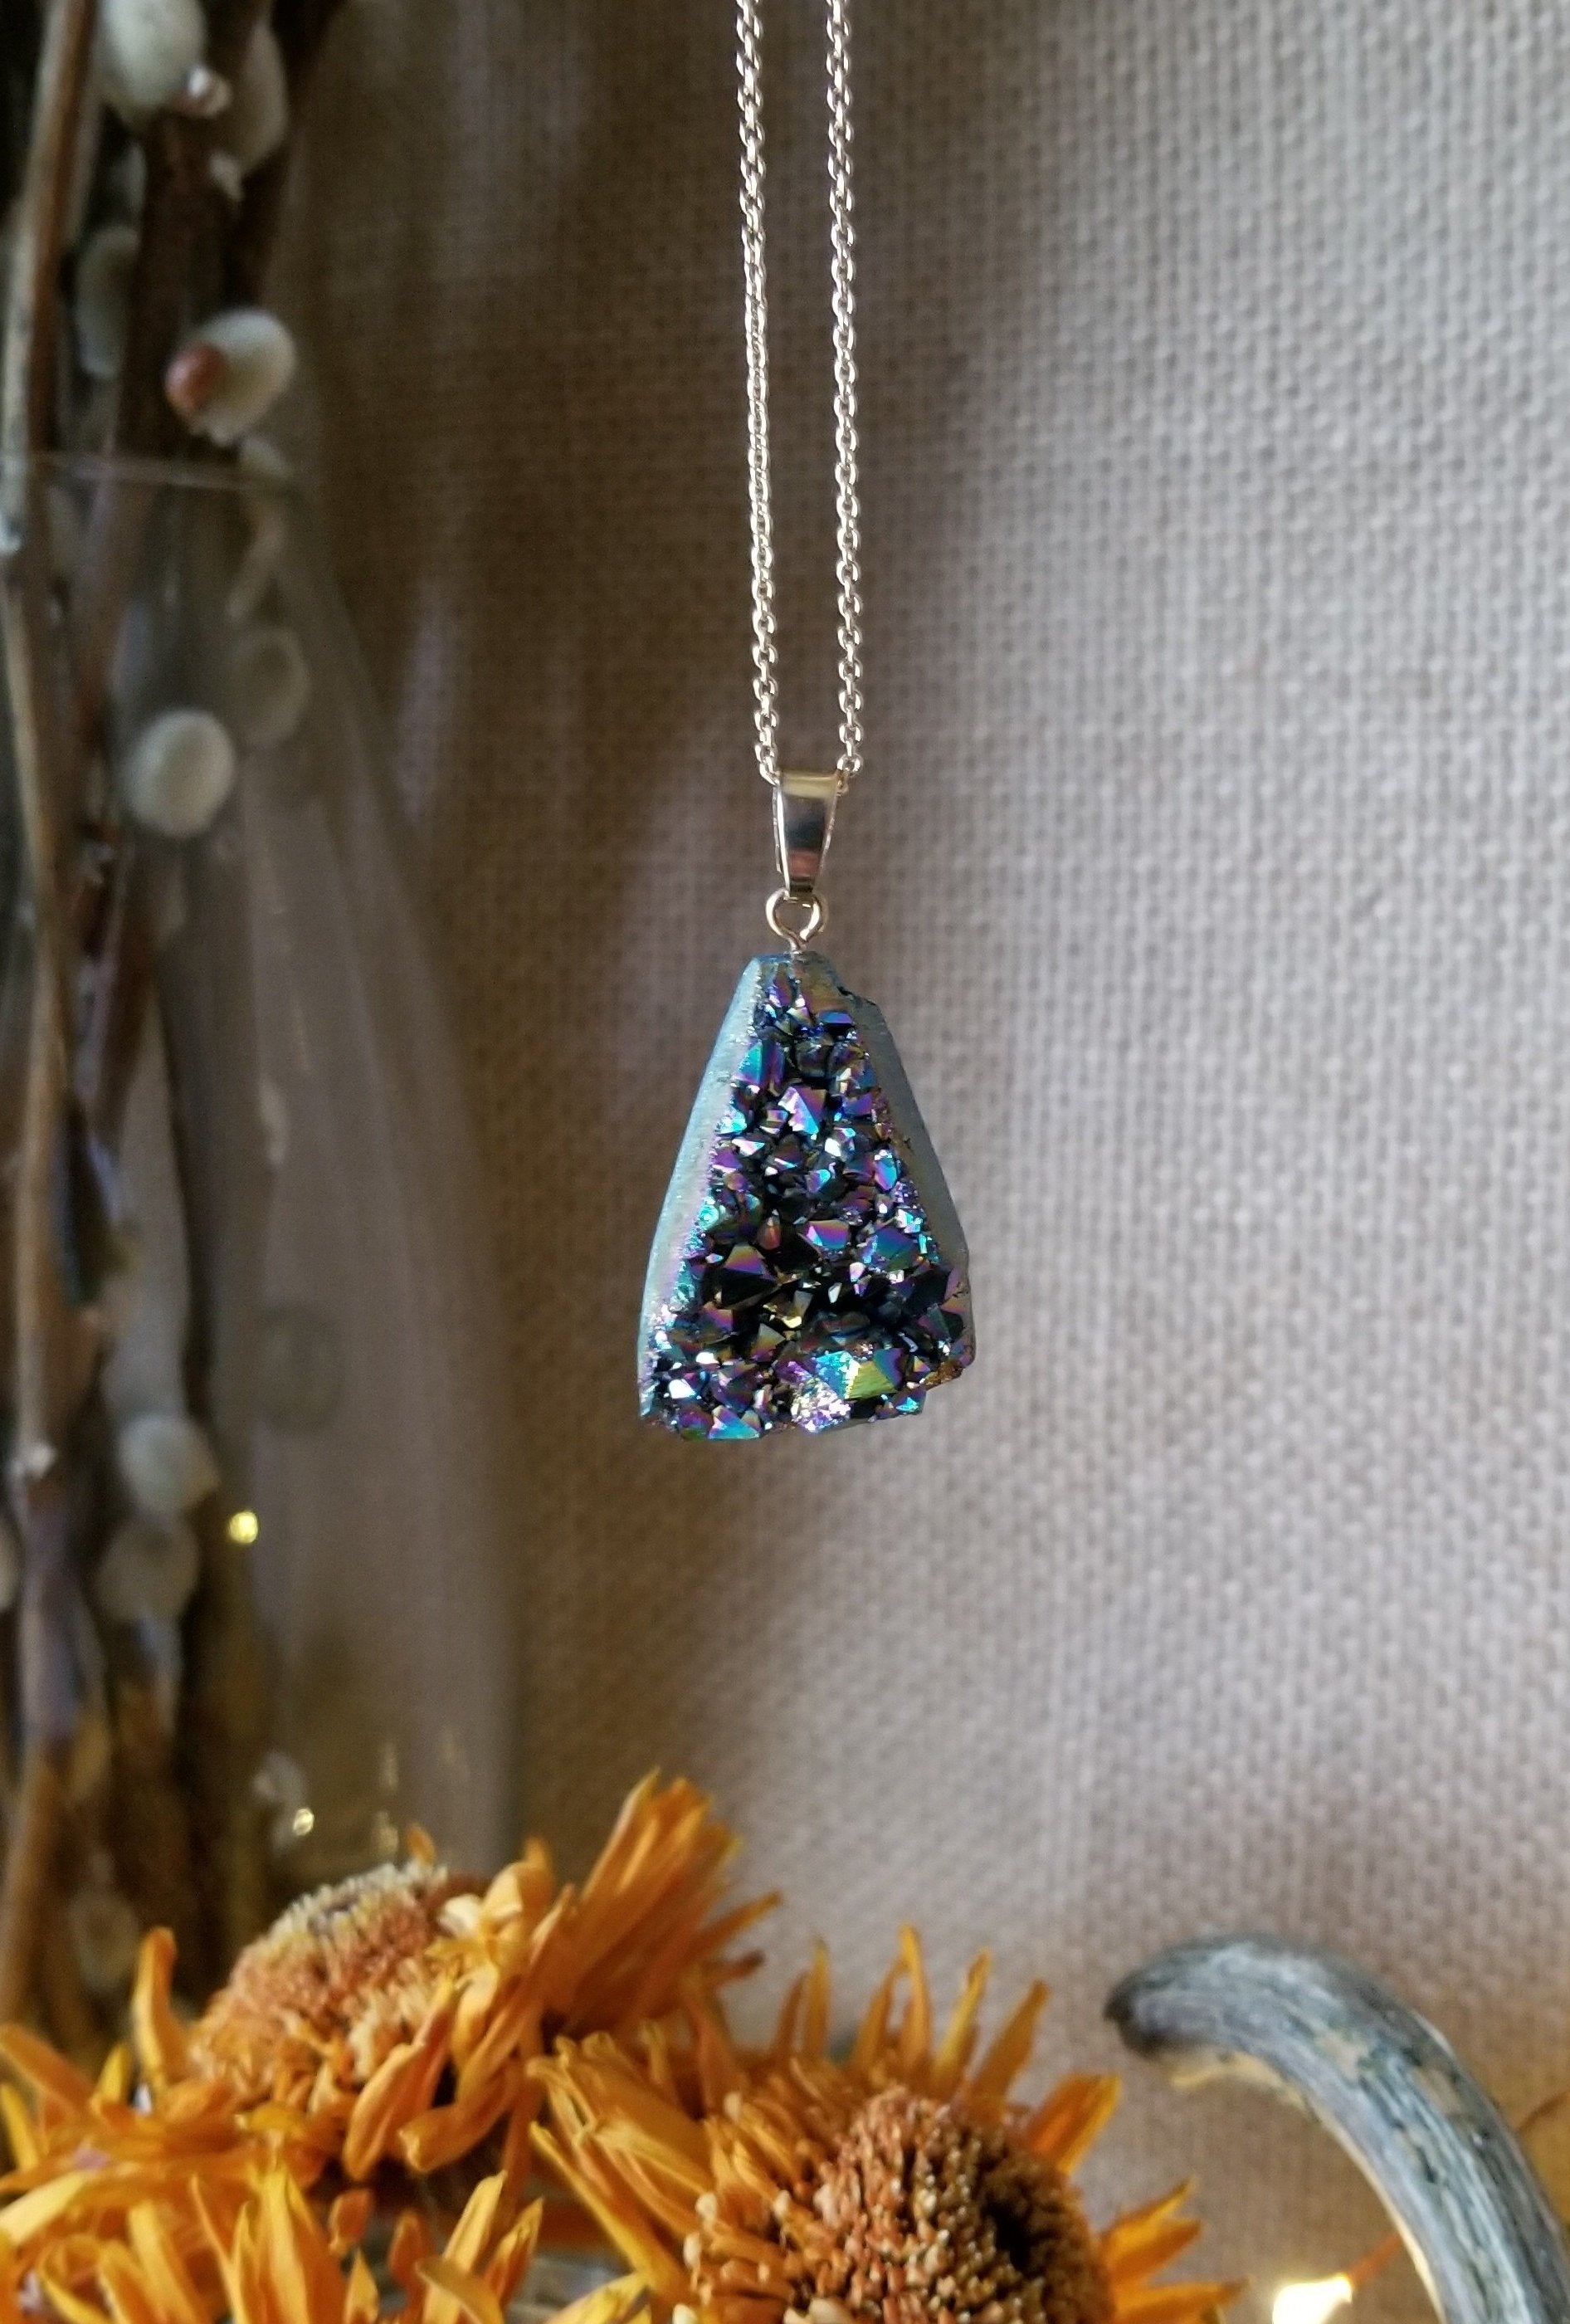 Triangular titanium aura quartz pendant with adjustable gold plated chain